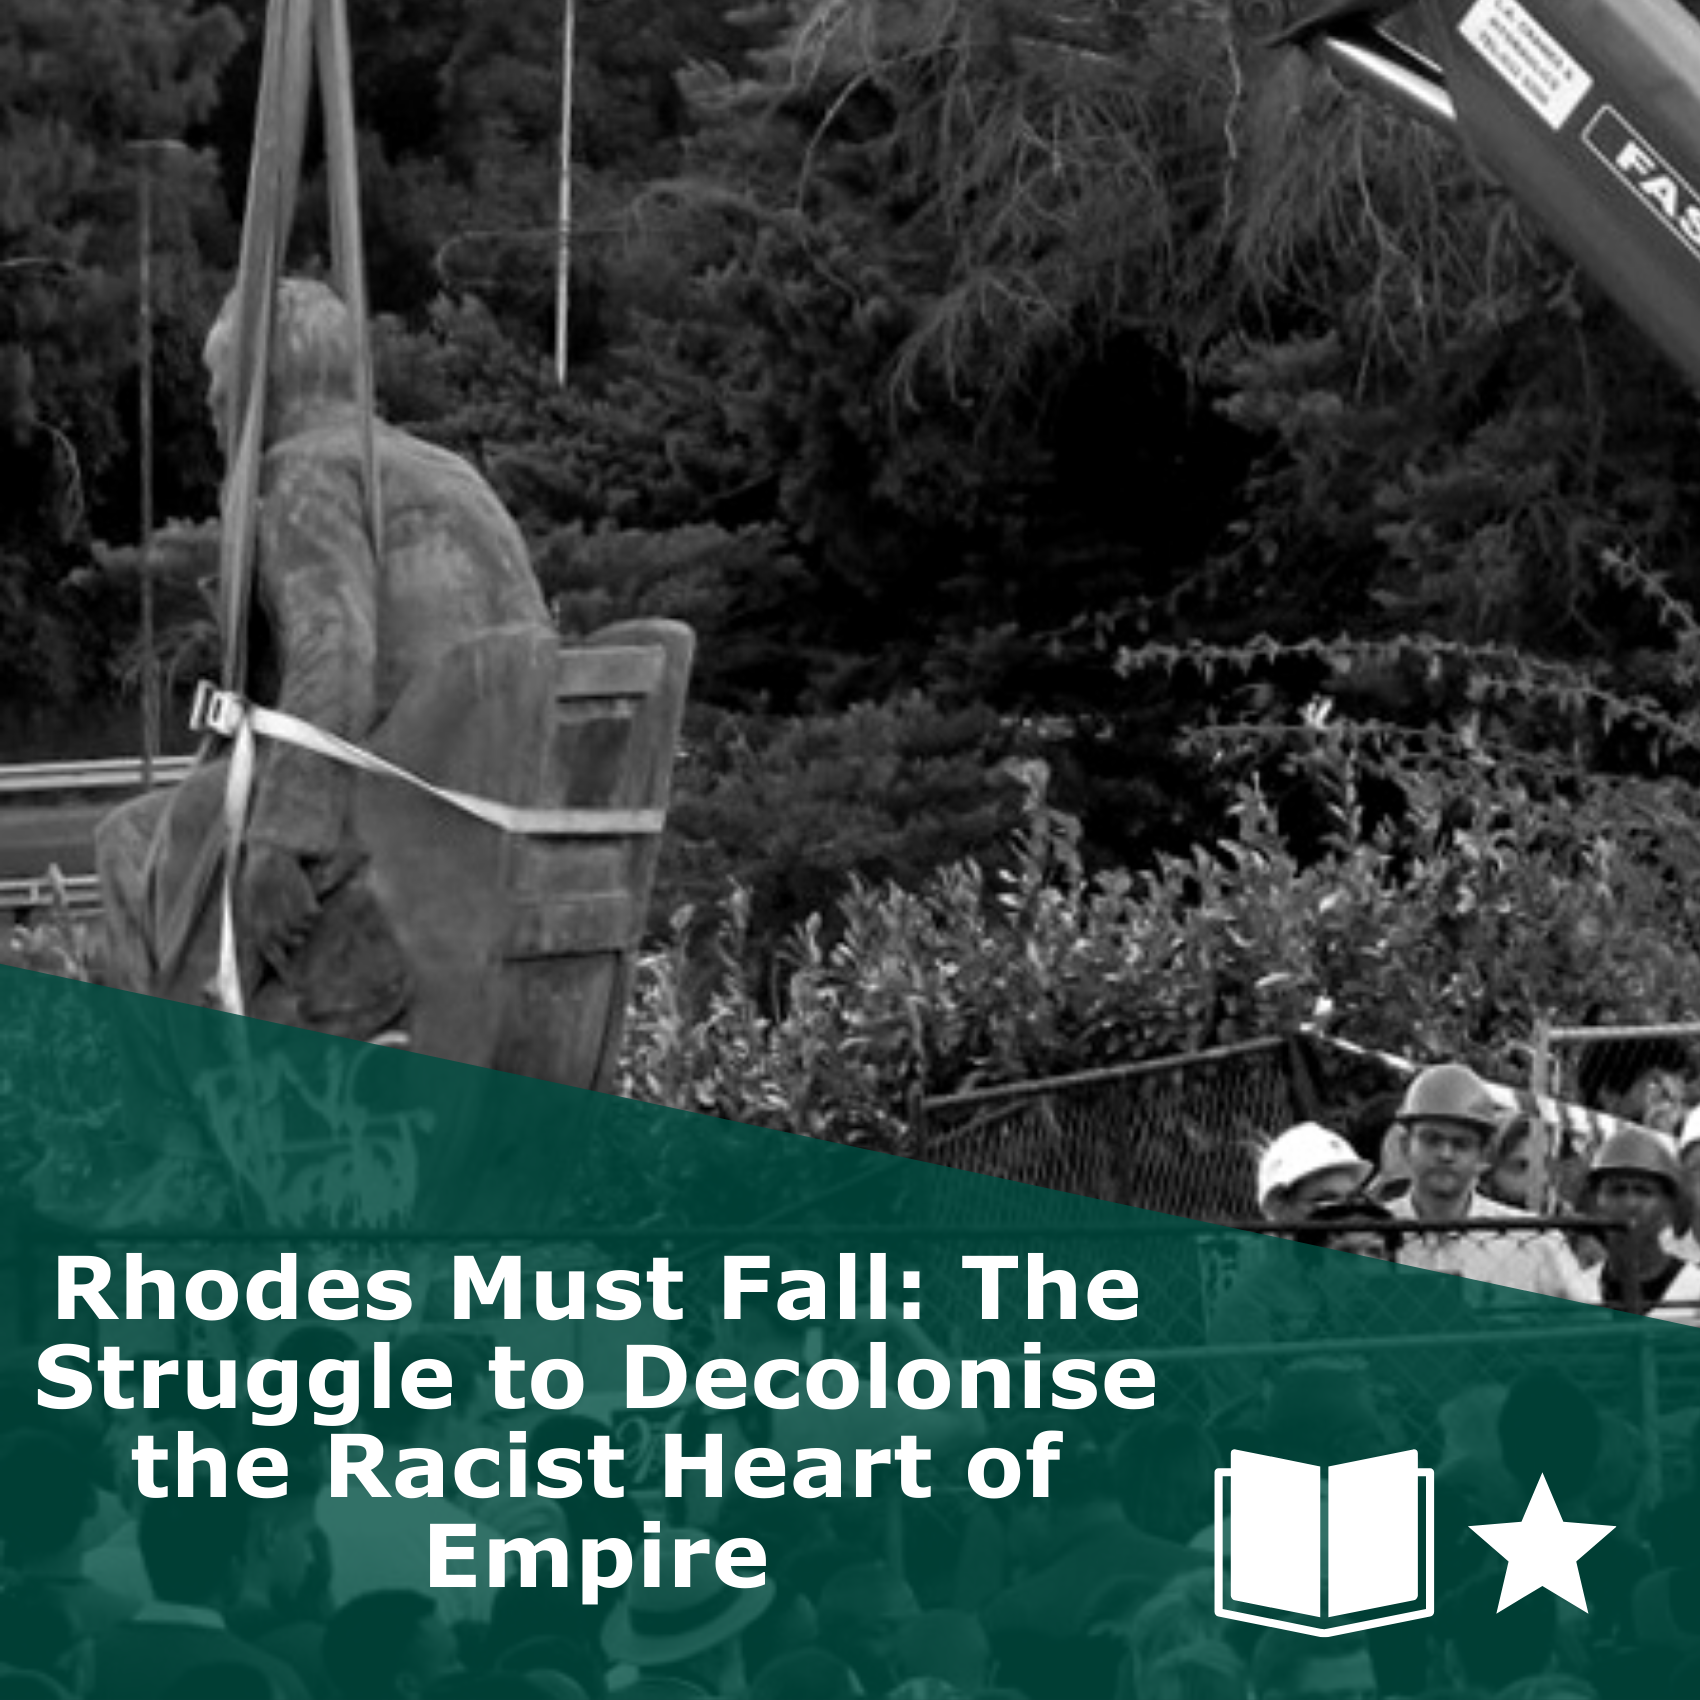 Picture of Rhodes statue being removed in black and white. Title 'Rhodes Must Fall: The Struggle to Decolonise the Racist Heart of Empire'. It is a book, rated one star